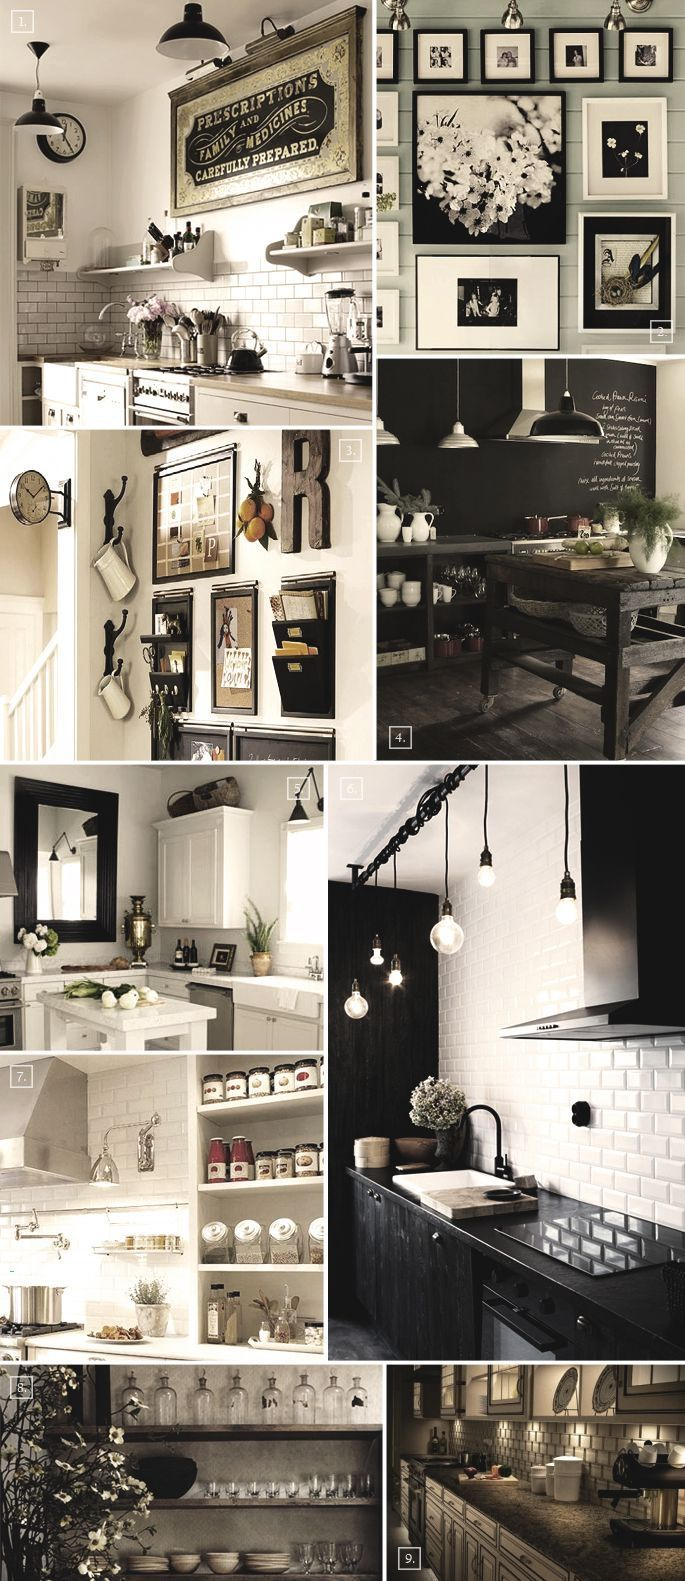 Wall decor for kitchens - Beautiful Wall Decor Ideas For A Kitchen